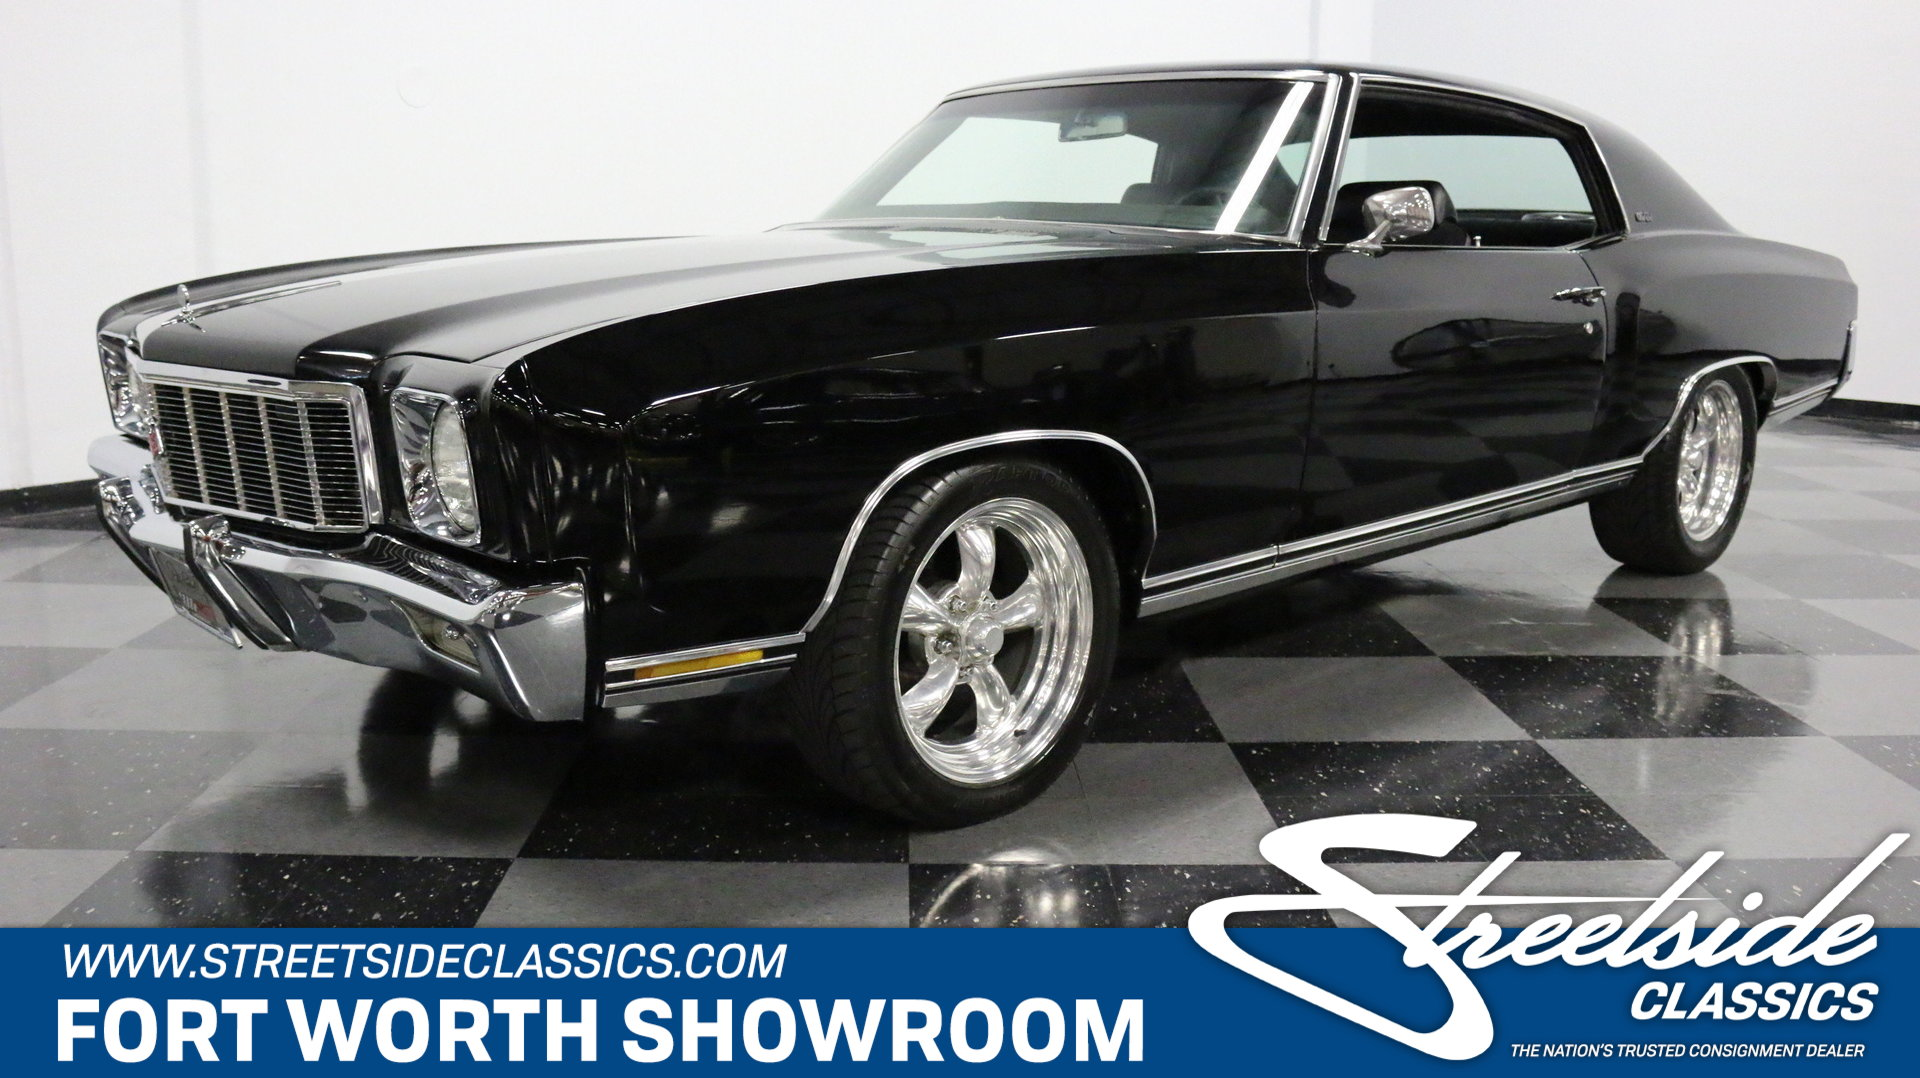 909604a0117441_hd_1971-chevrolet-monte-carlo Take A Look About 1980 Monte Carlo for Sale with Mesmerizing Photos Cars Review